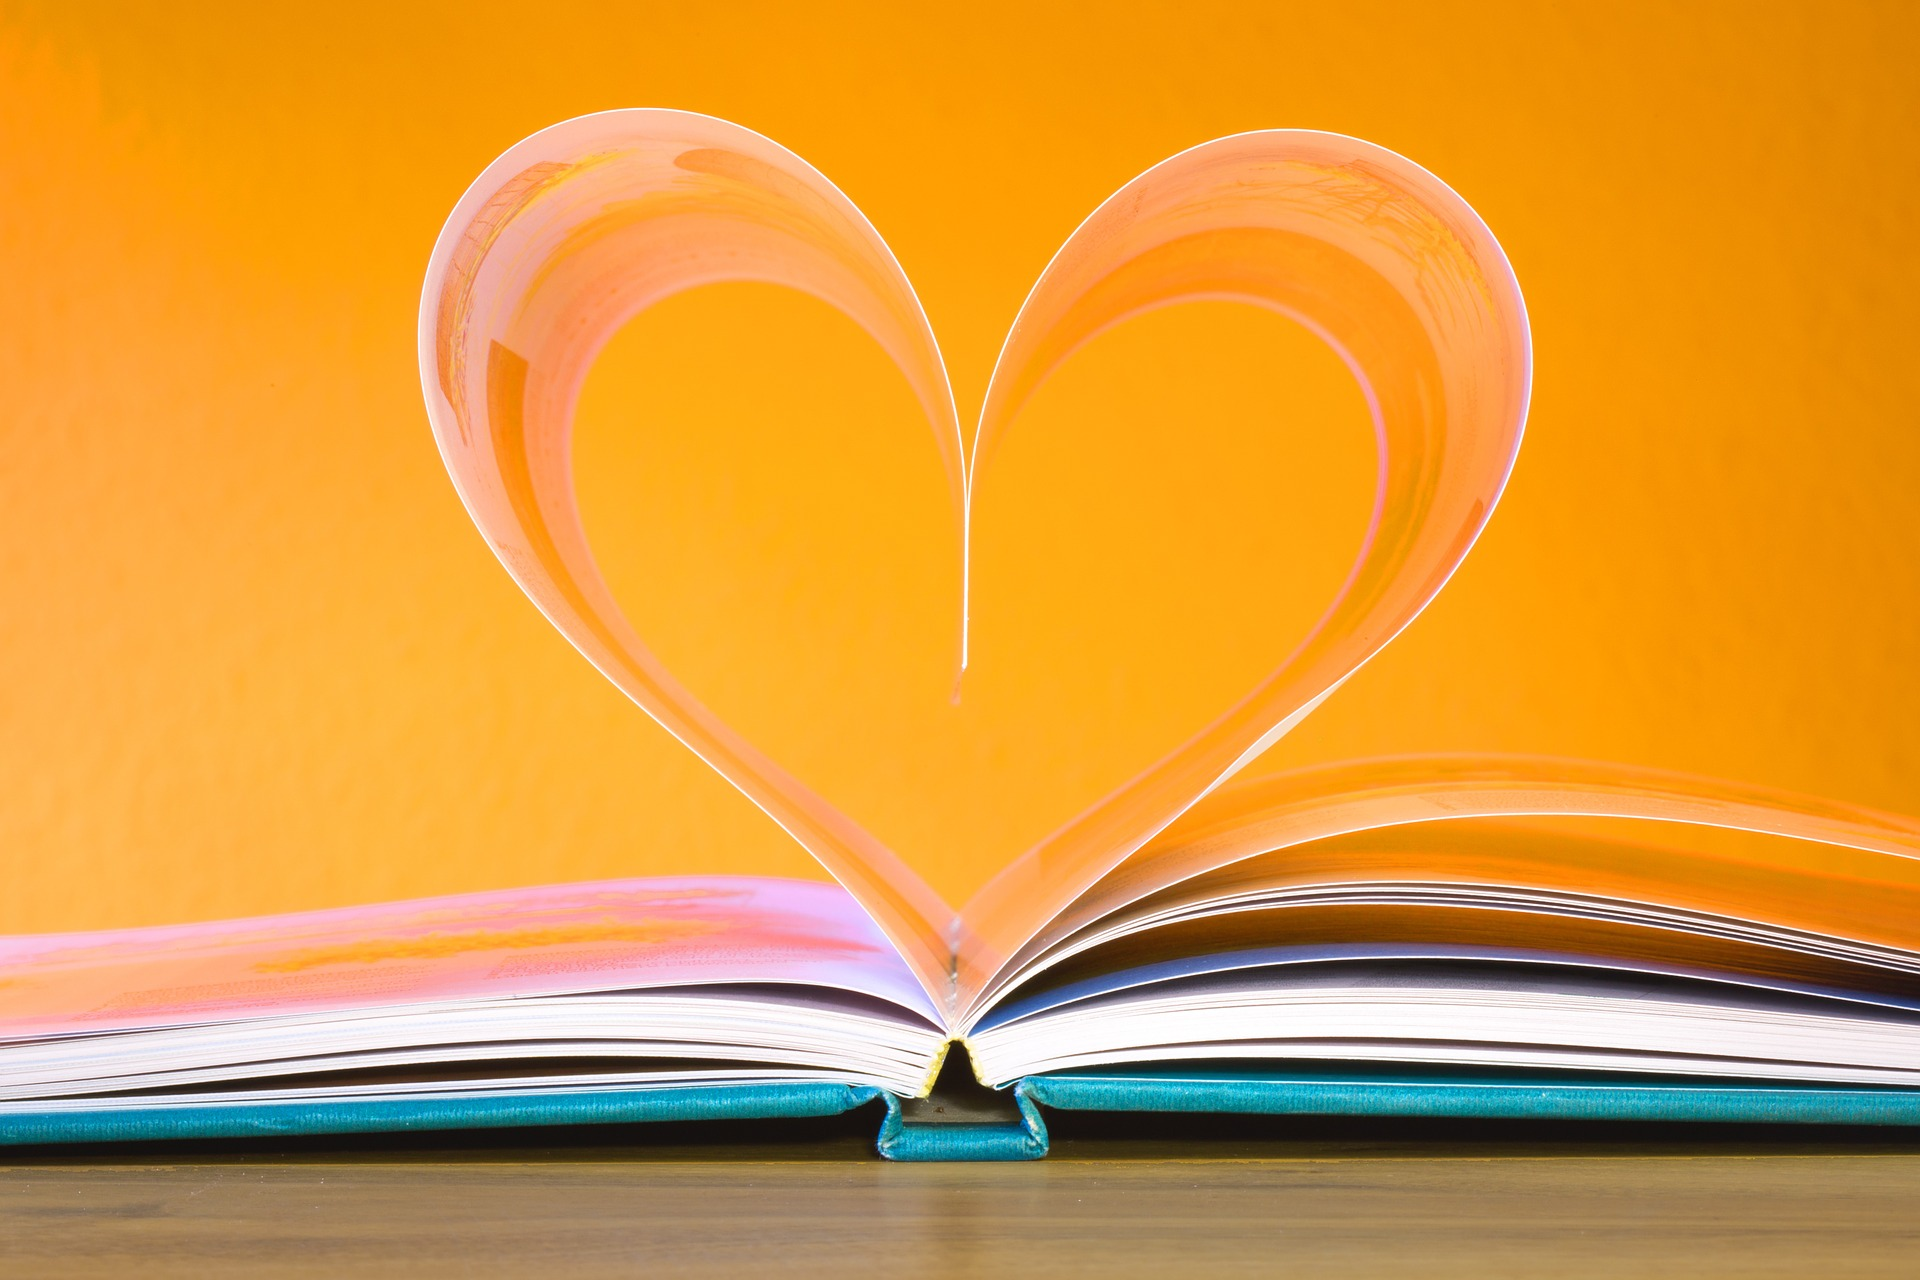 Open book with 2 pages folded to form a heart shape